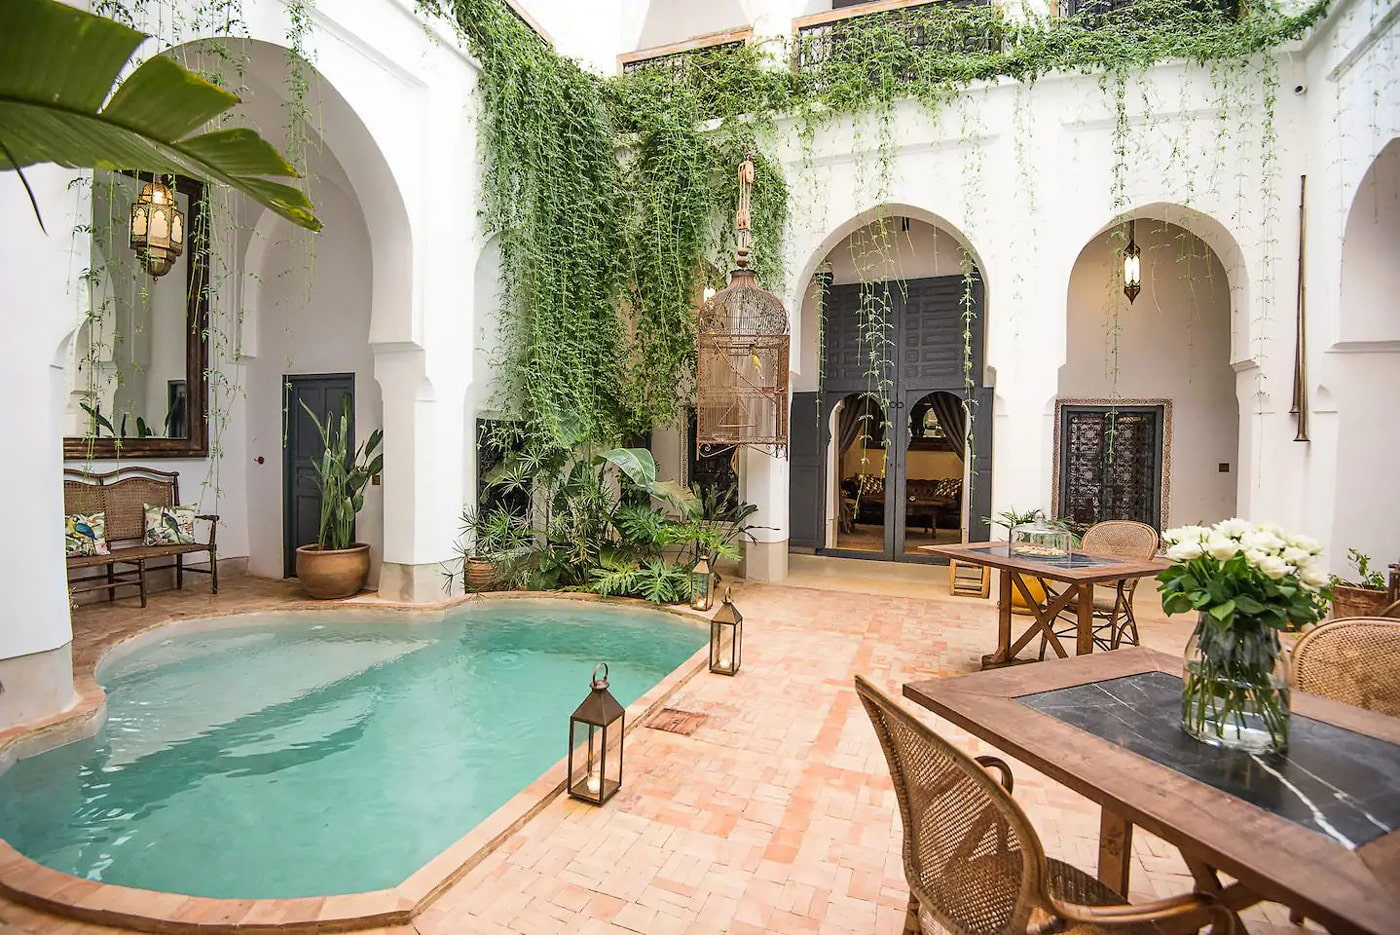 Luxury Airbnb in Marrakech